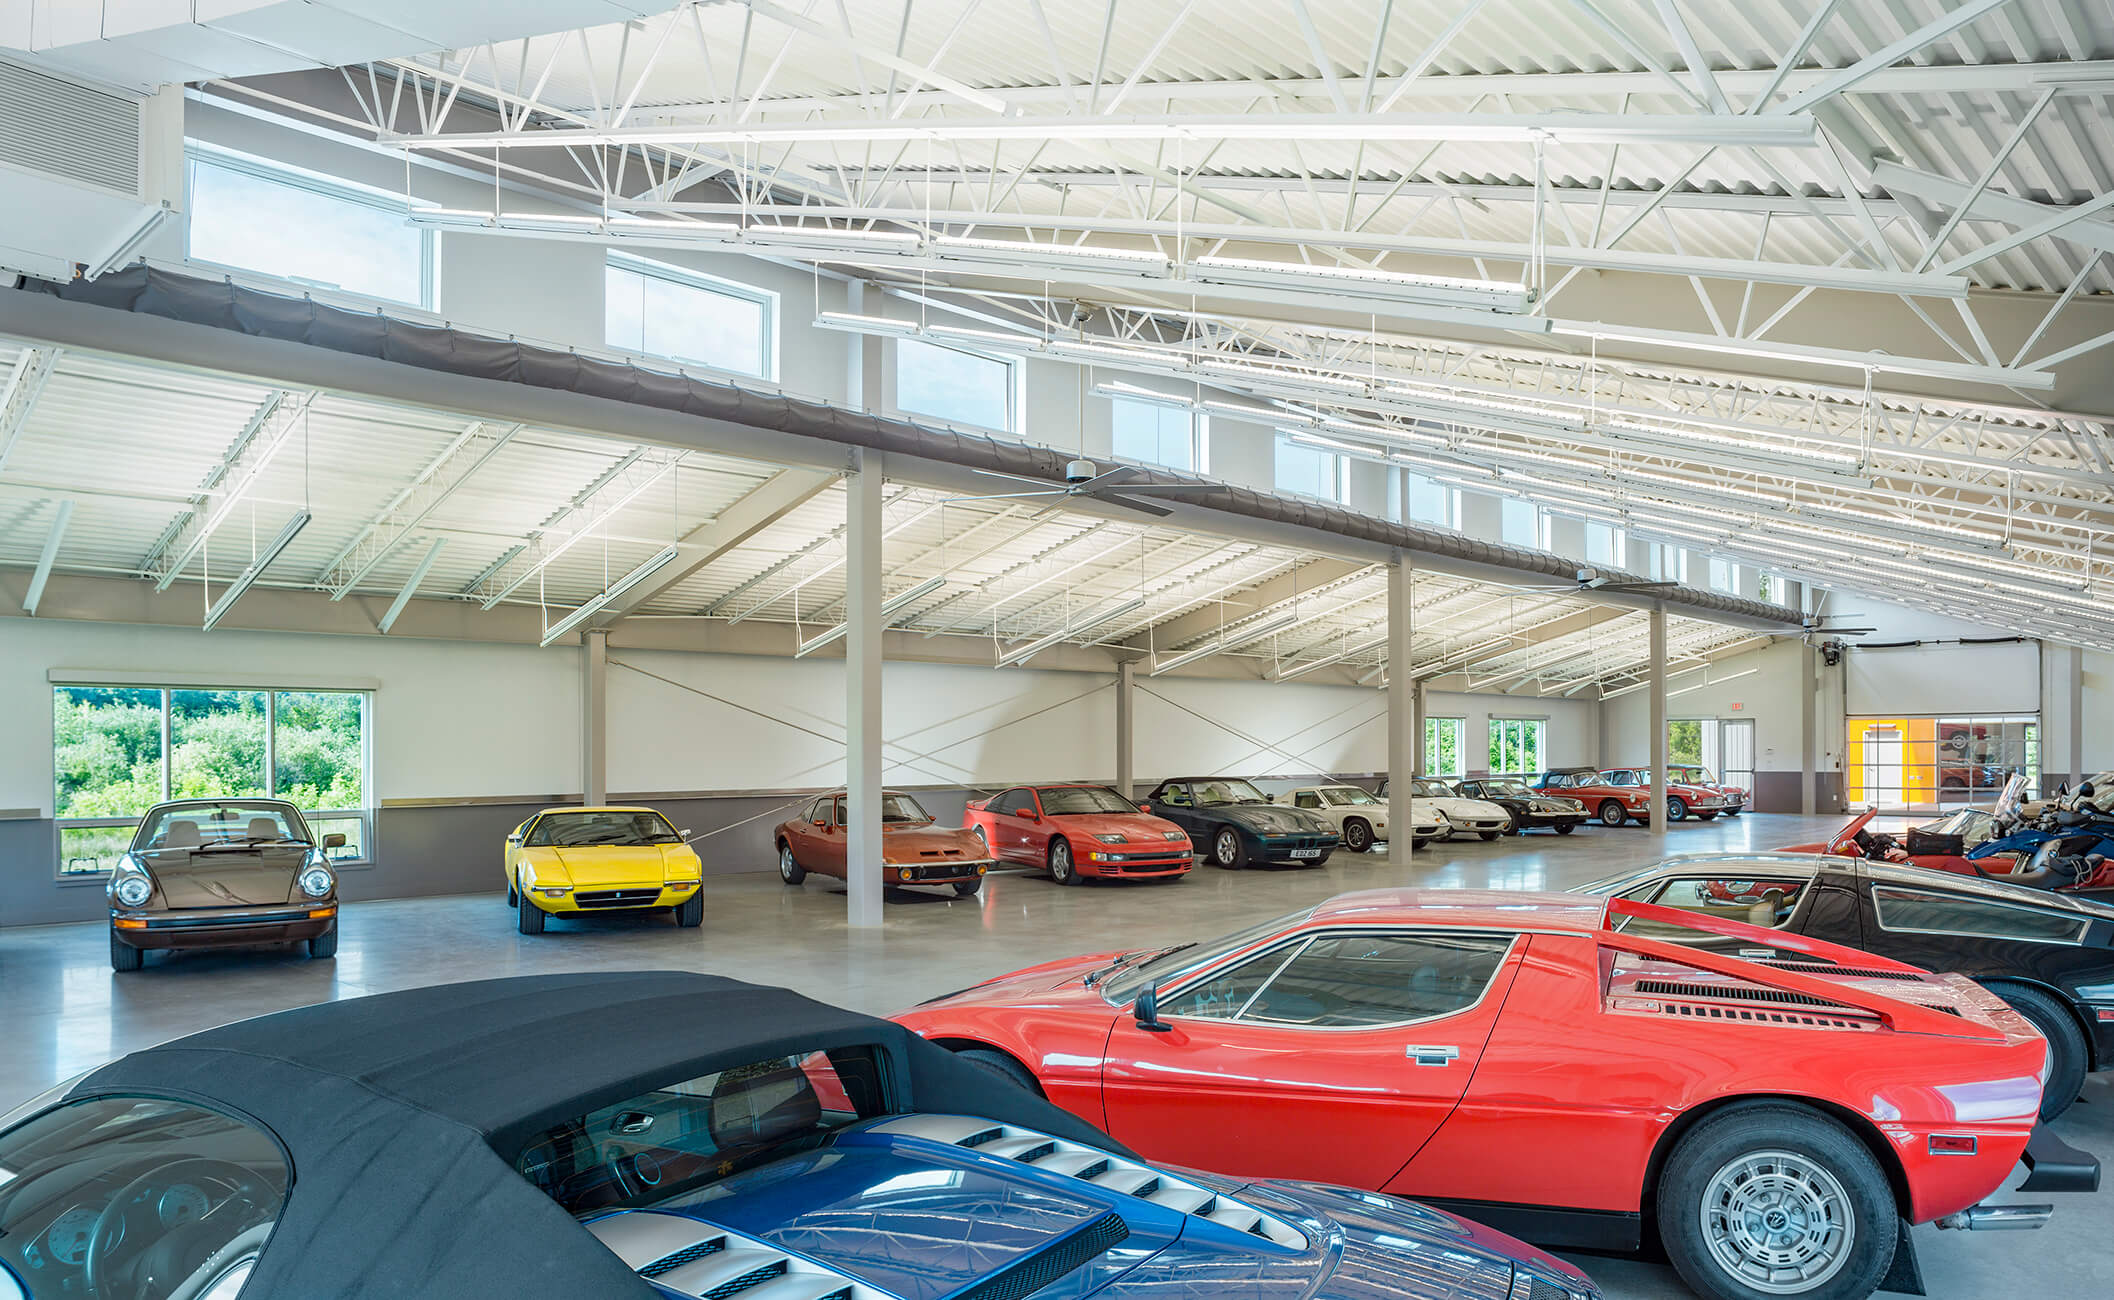 news archive tempotempo smith buckley architects collaborated with jim stockman of j m lighting design to create a stunning private garage to house a classic car collection